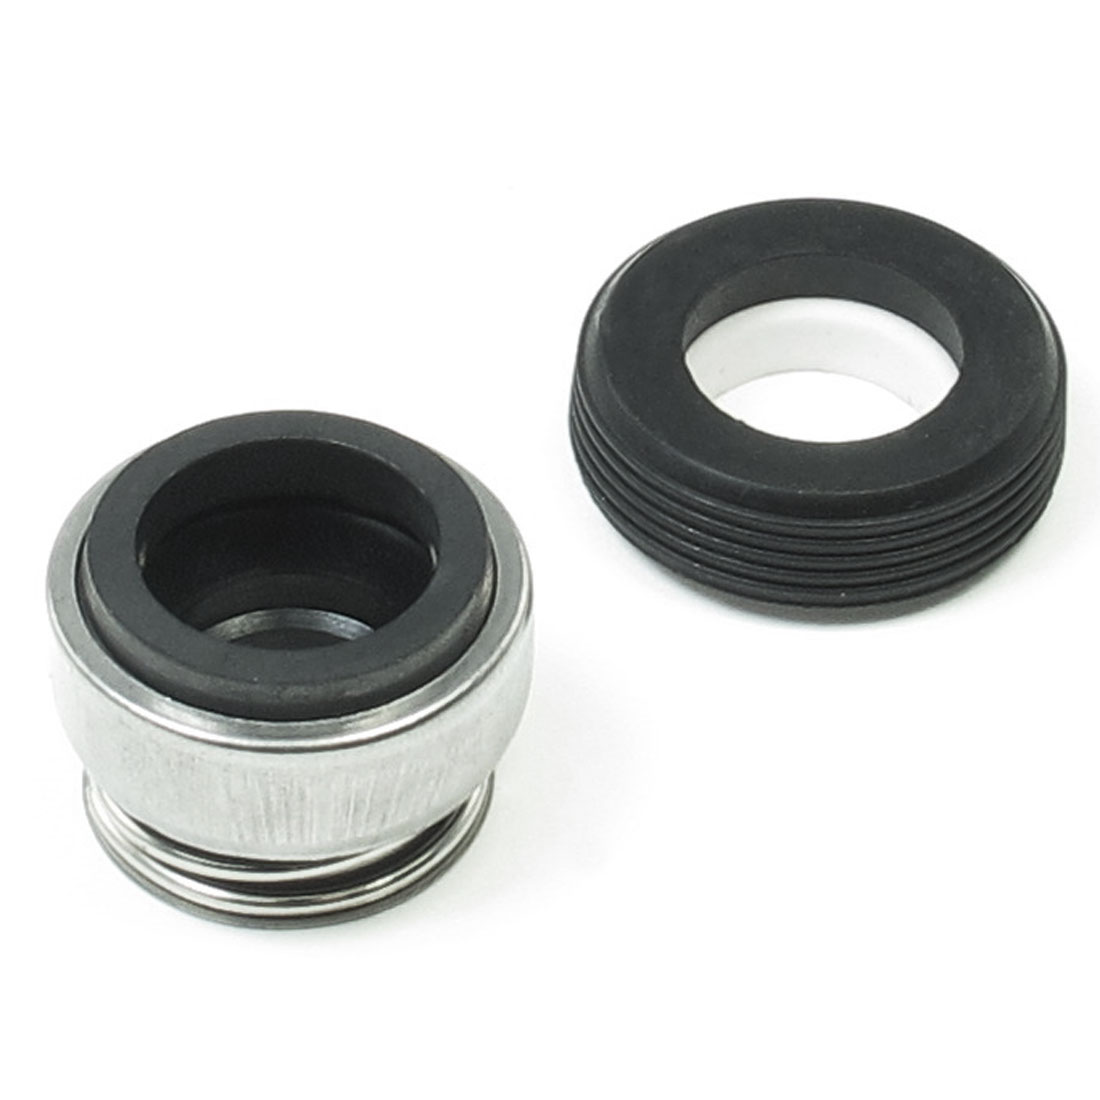 14mm Coiled Spring Rubber Bellow Pump Mechanical Seal 301-12